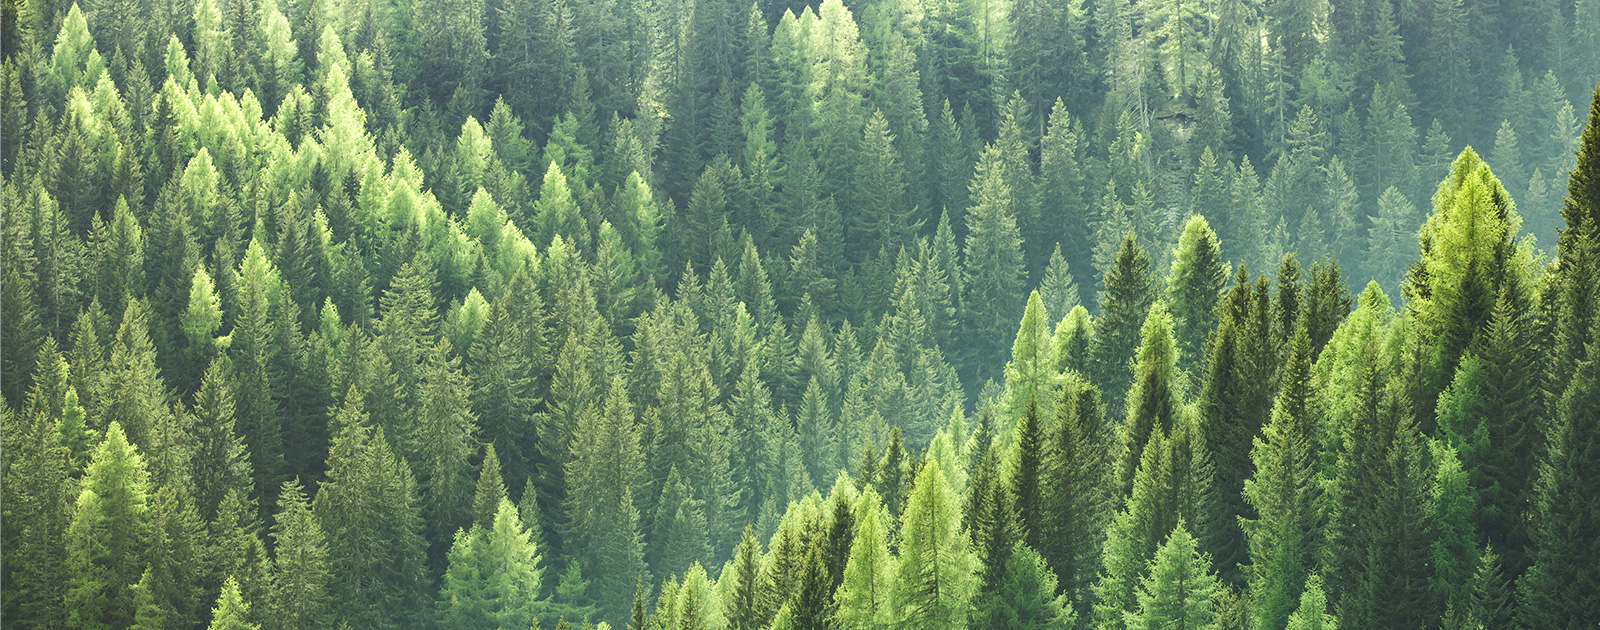 Forest – Environment and Sustainability